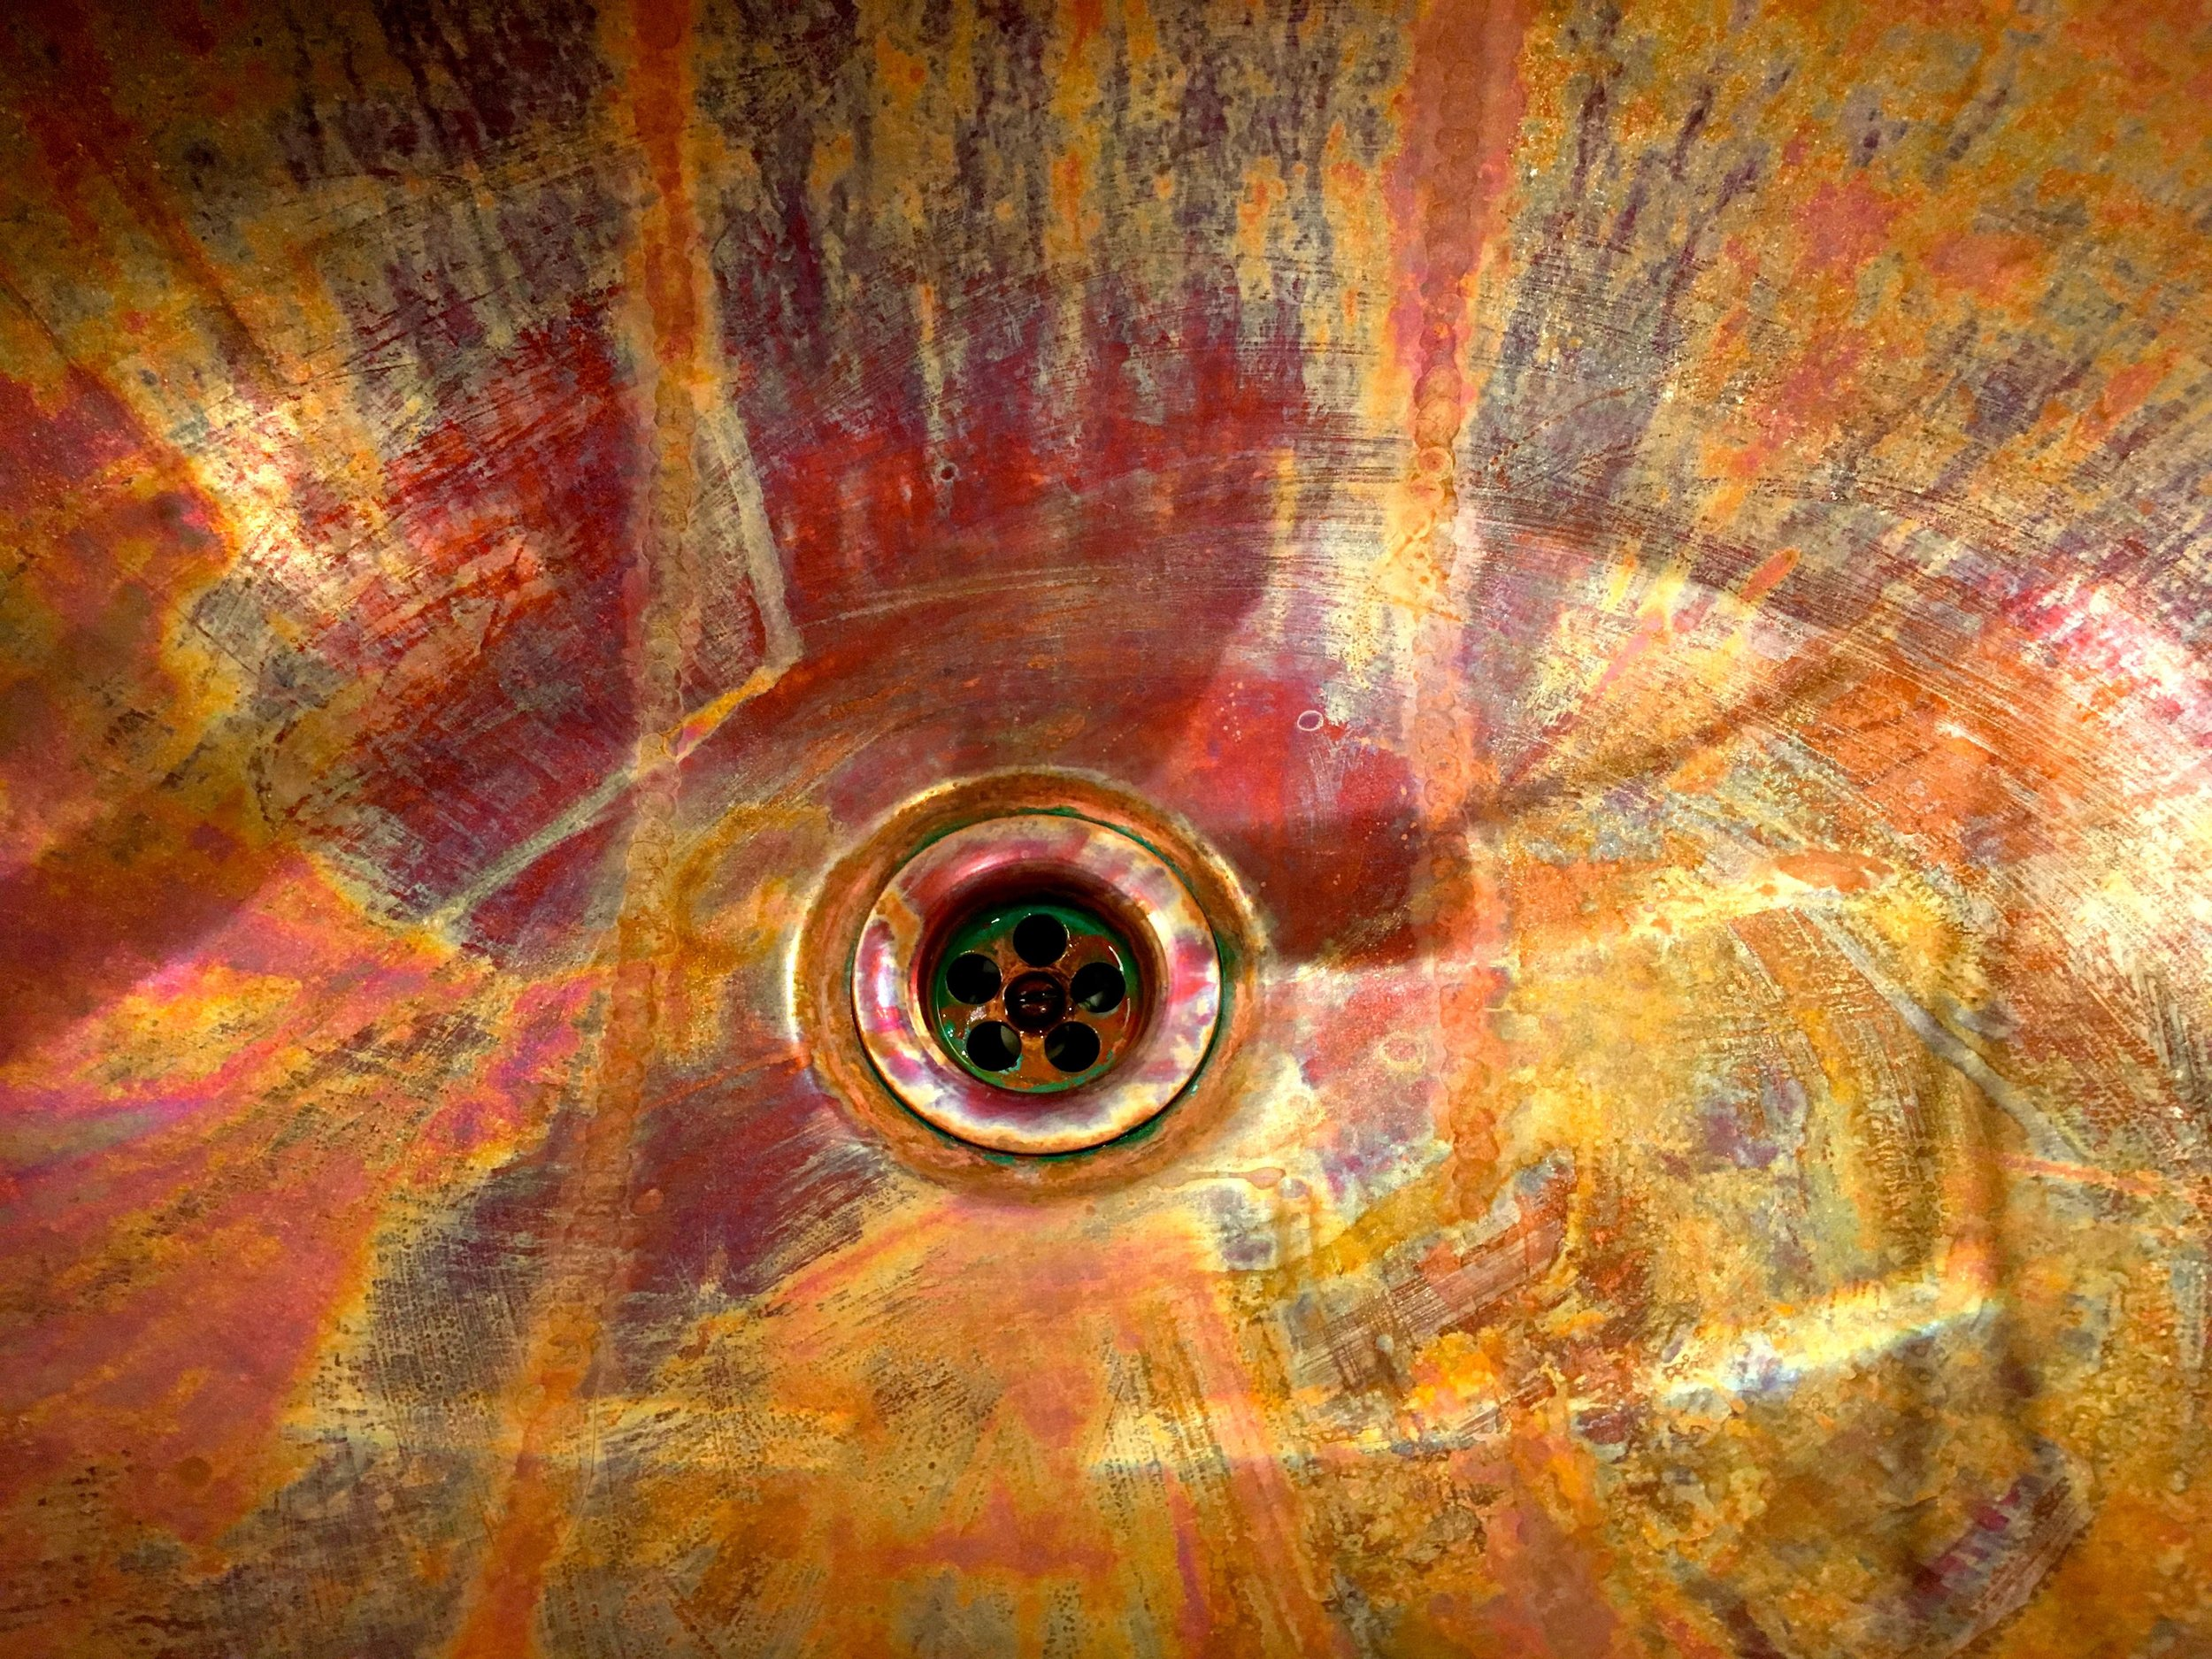 Just look at the colours and the patination of the copper sink